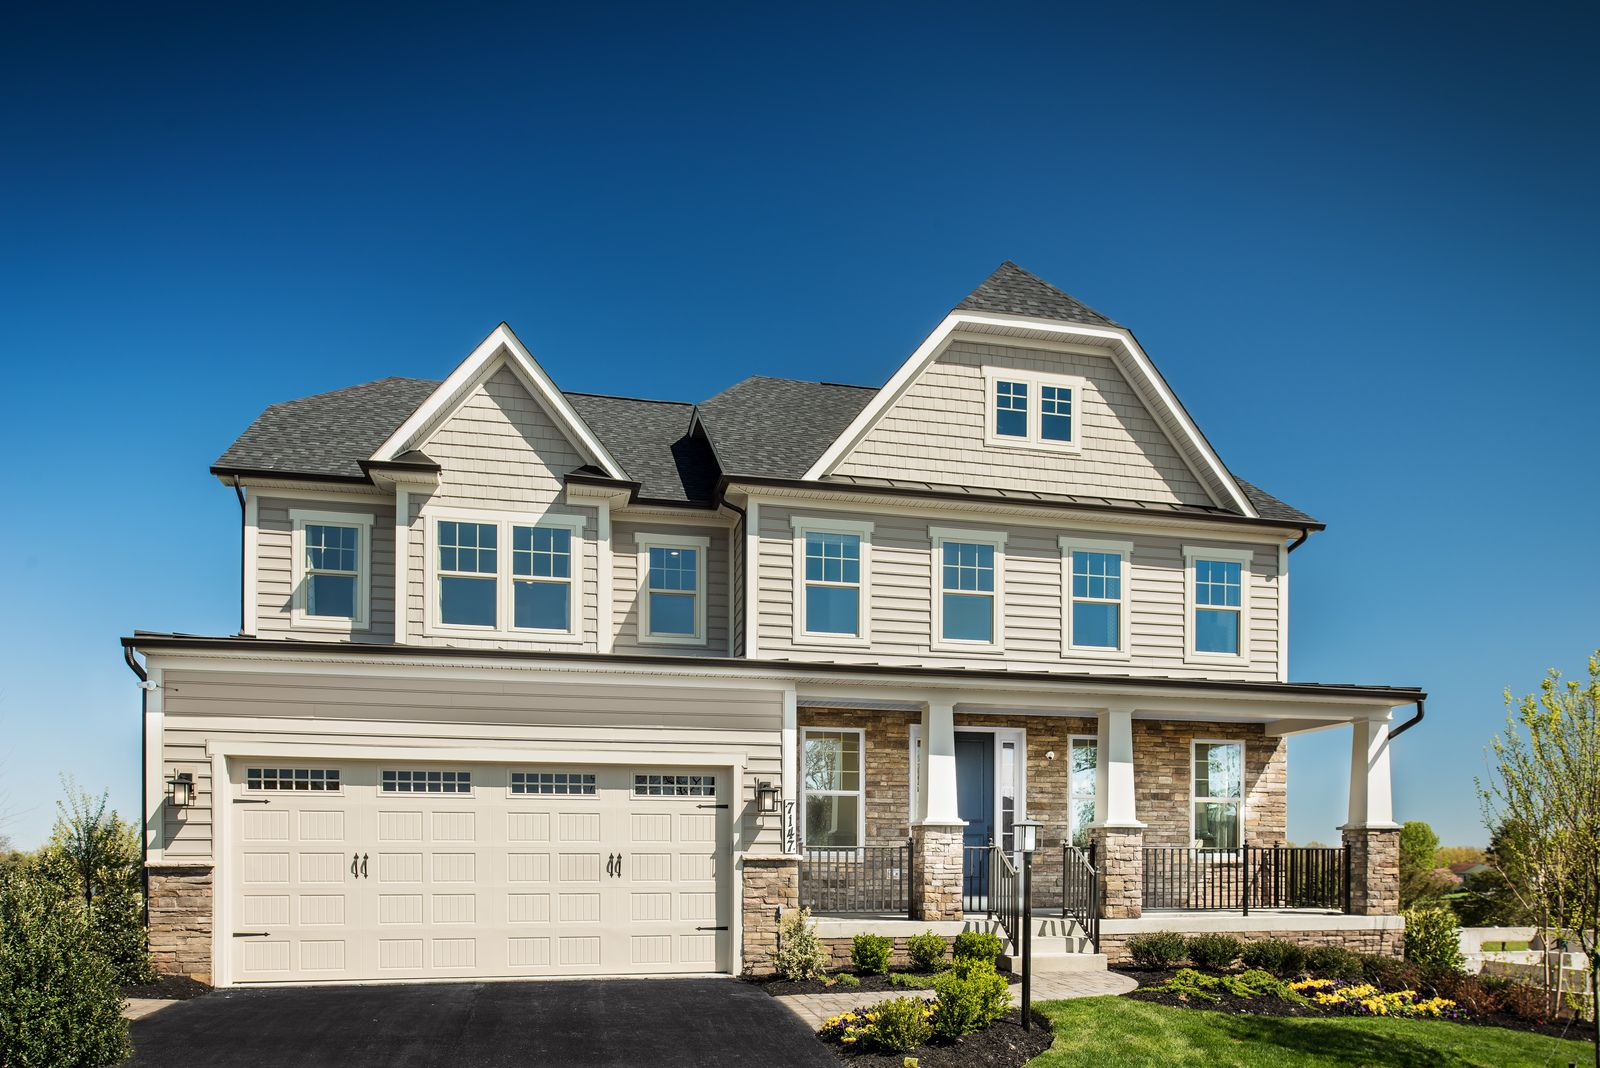 Luxury Single-Family Homes Near Centennial High:NVHomes proudly presents Centennial Reserve, a private enclave of luxurious single-family homes from the low $1 million+.Sales are now underway.Join our VIP list to schedule a visit today!